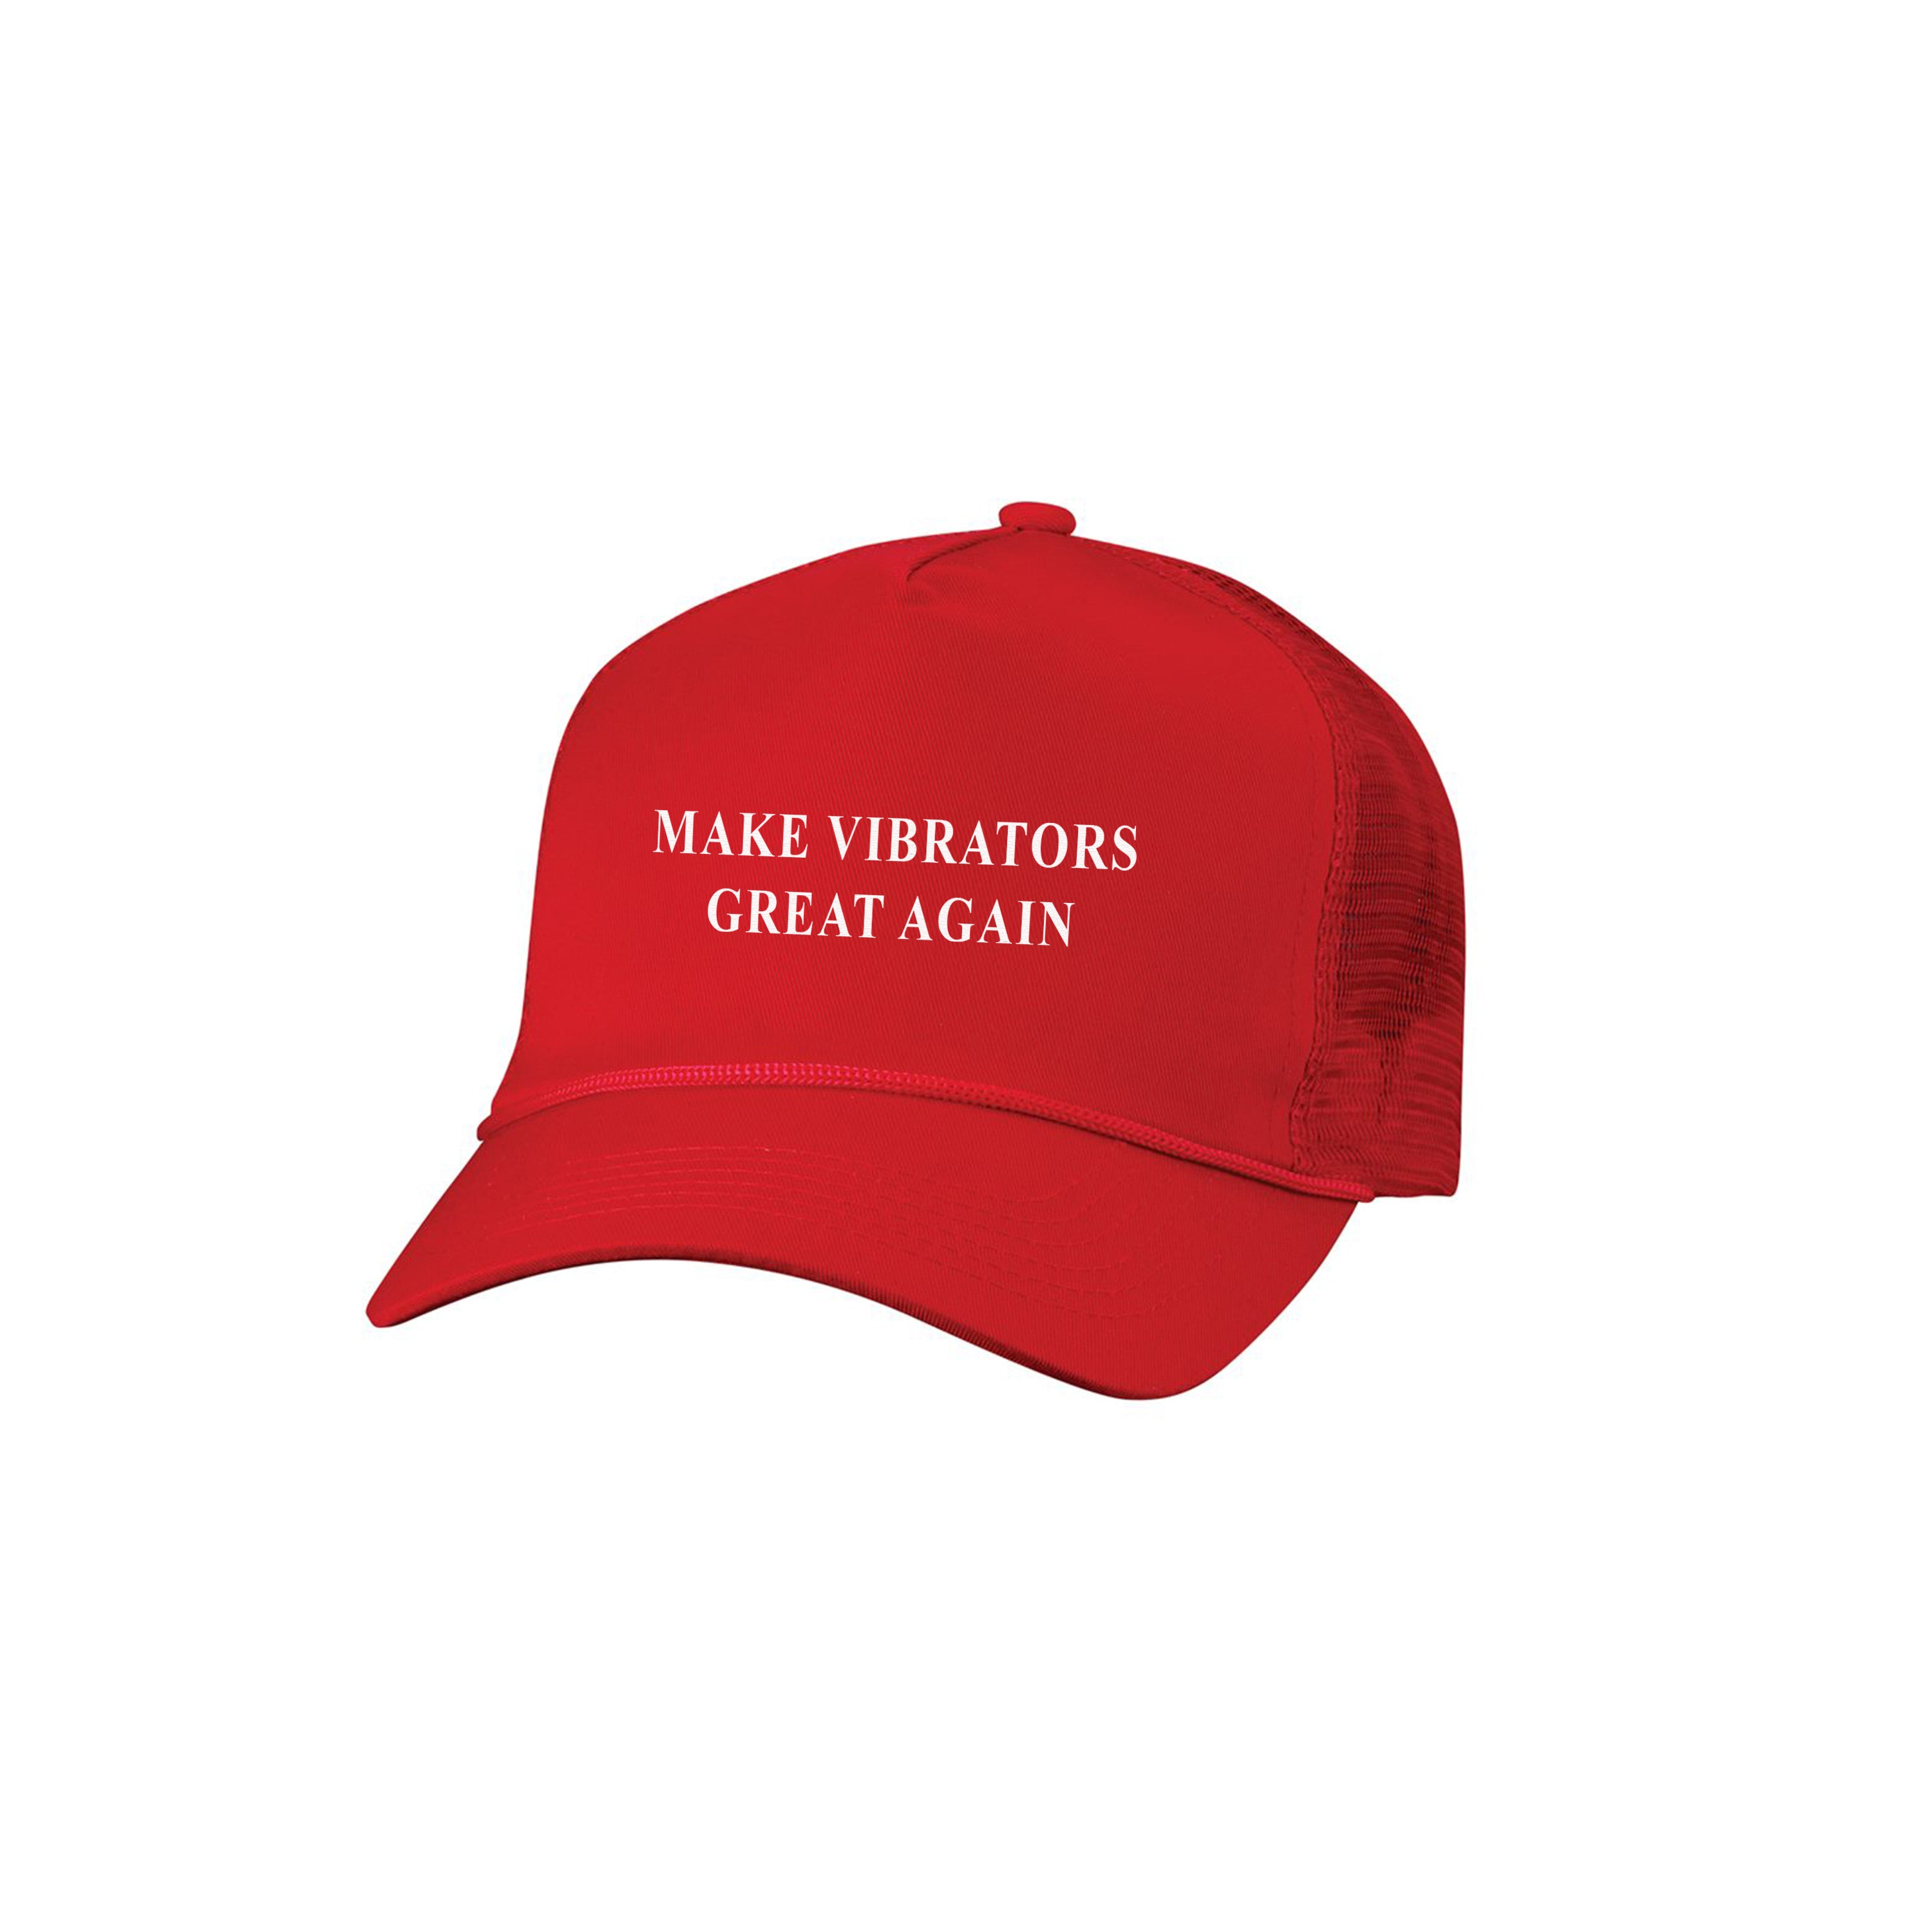 Make vibrators great again - Trucker Hat